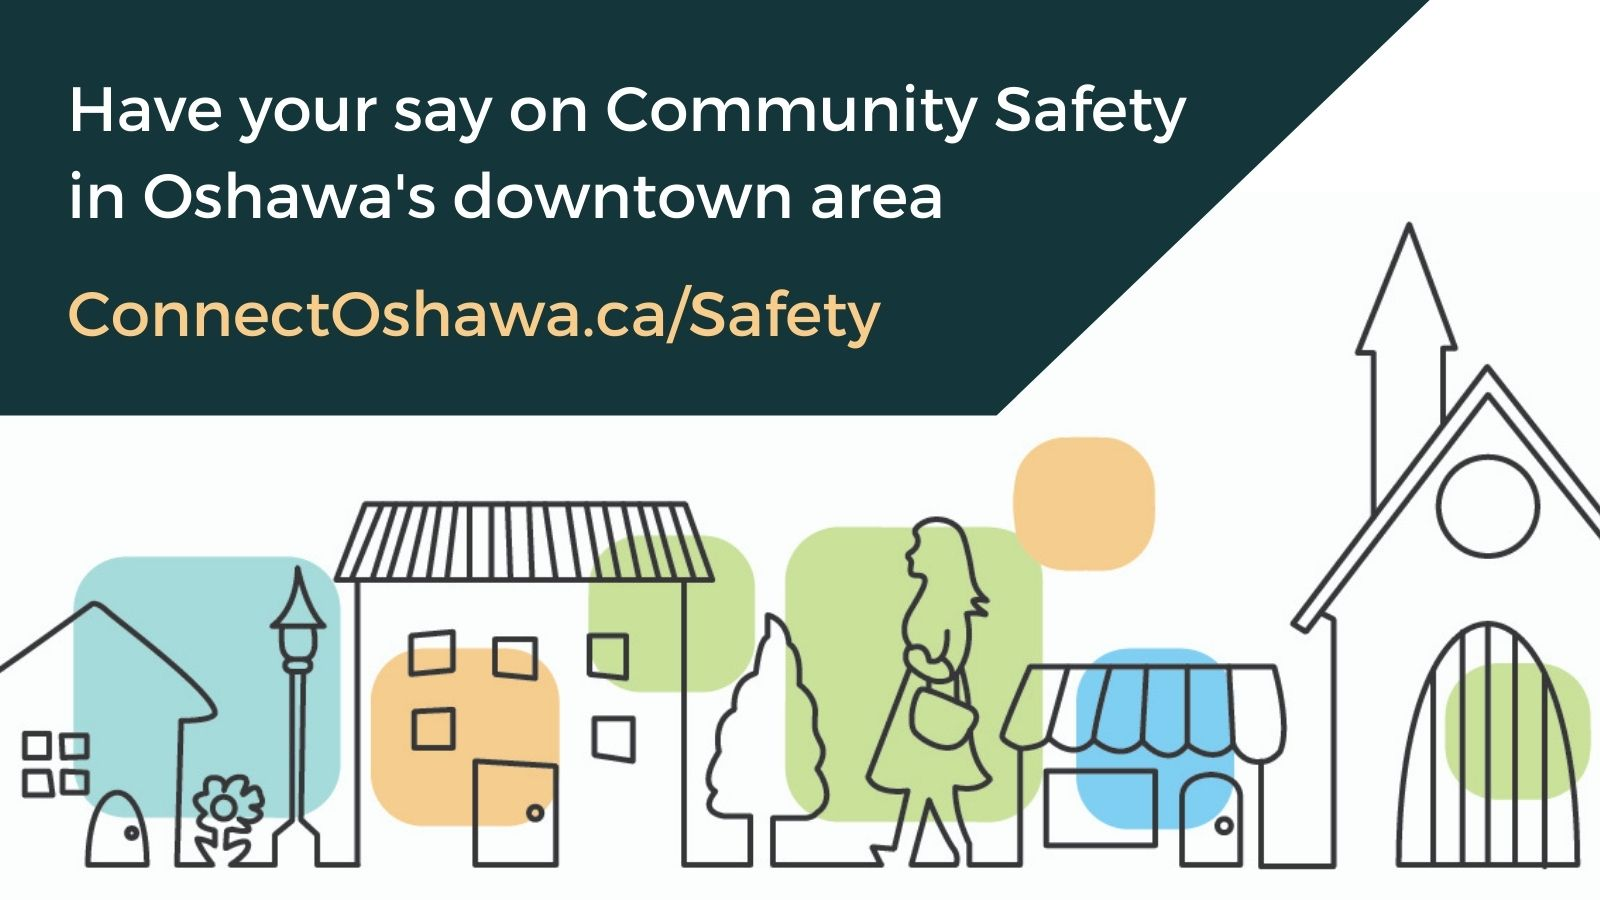 Have your say on Community Safety in Oshawa's downtown area